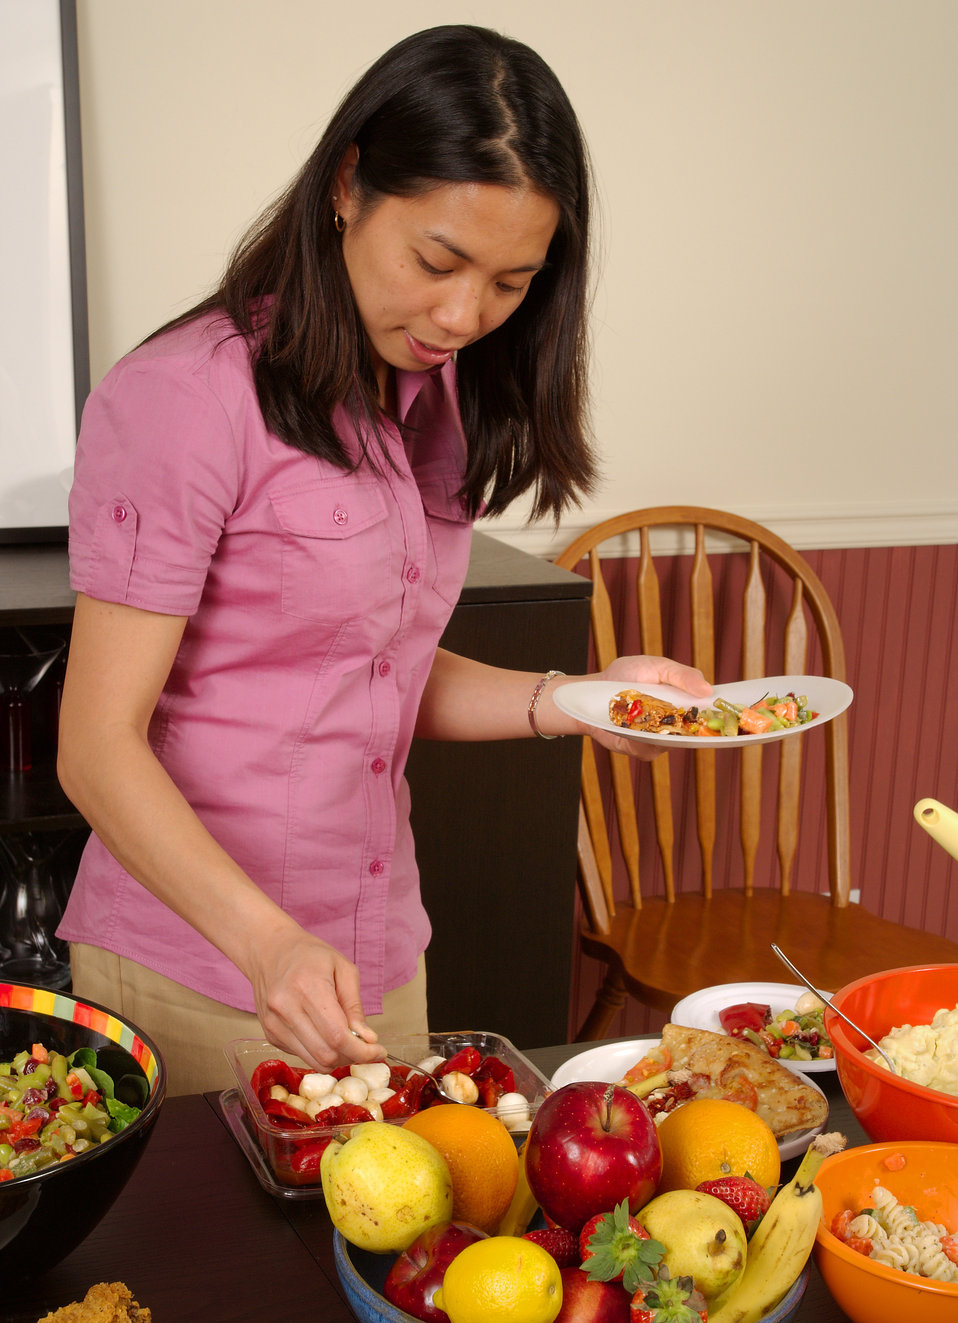 This image depicts a young woman serving herself from a dining table, atop which was plated a large quantity of foods representing a number